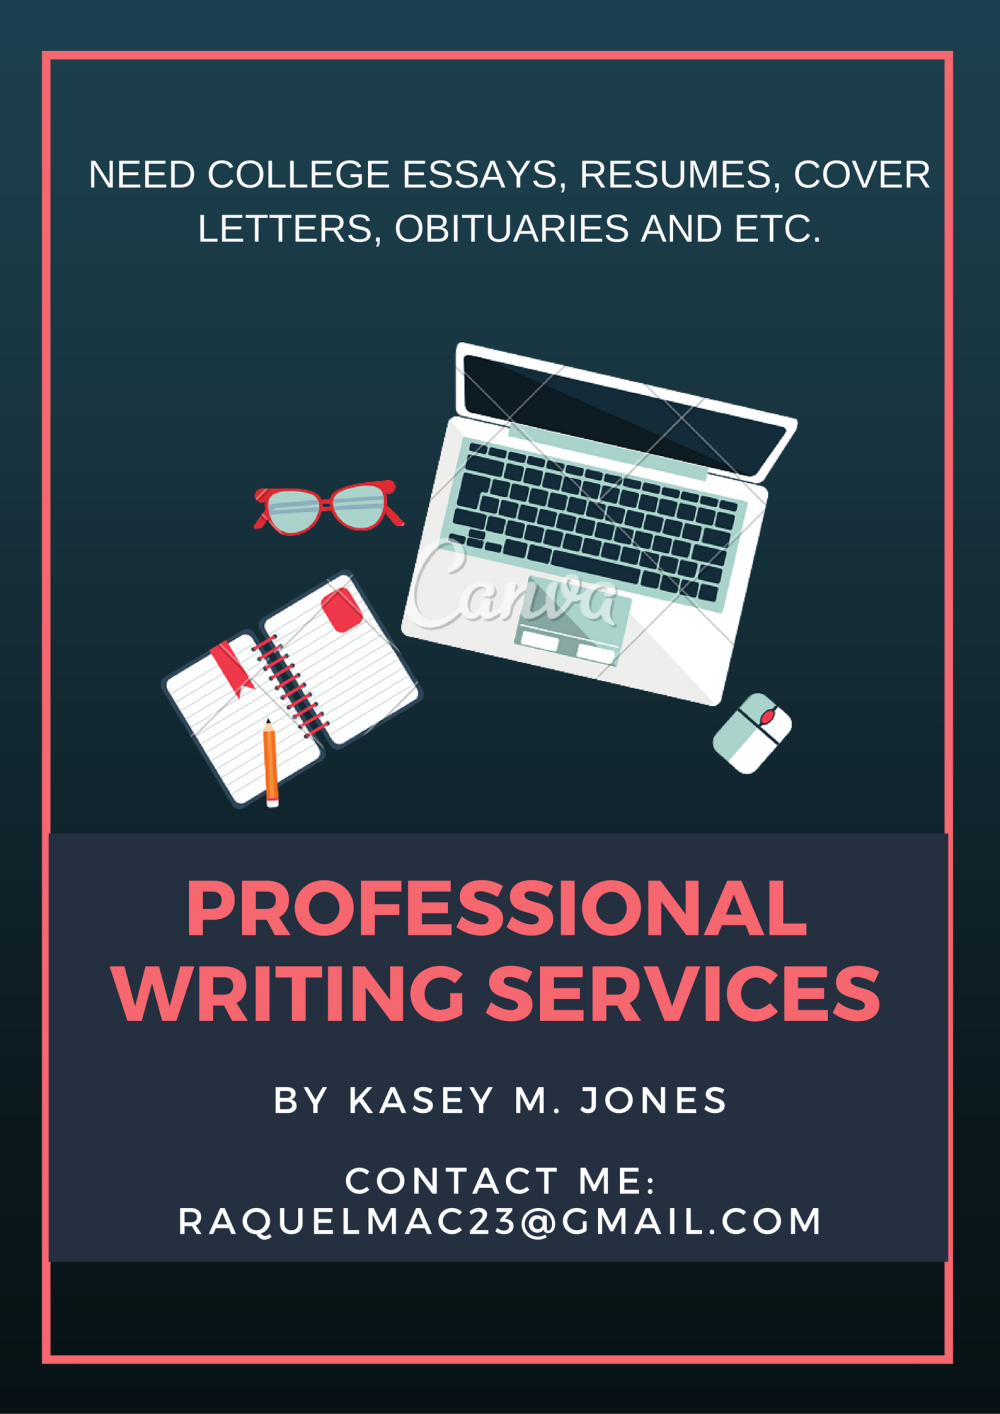 Top essay writing service guardians